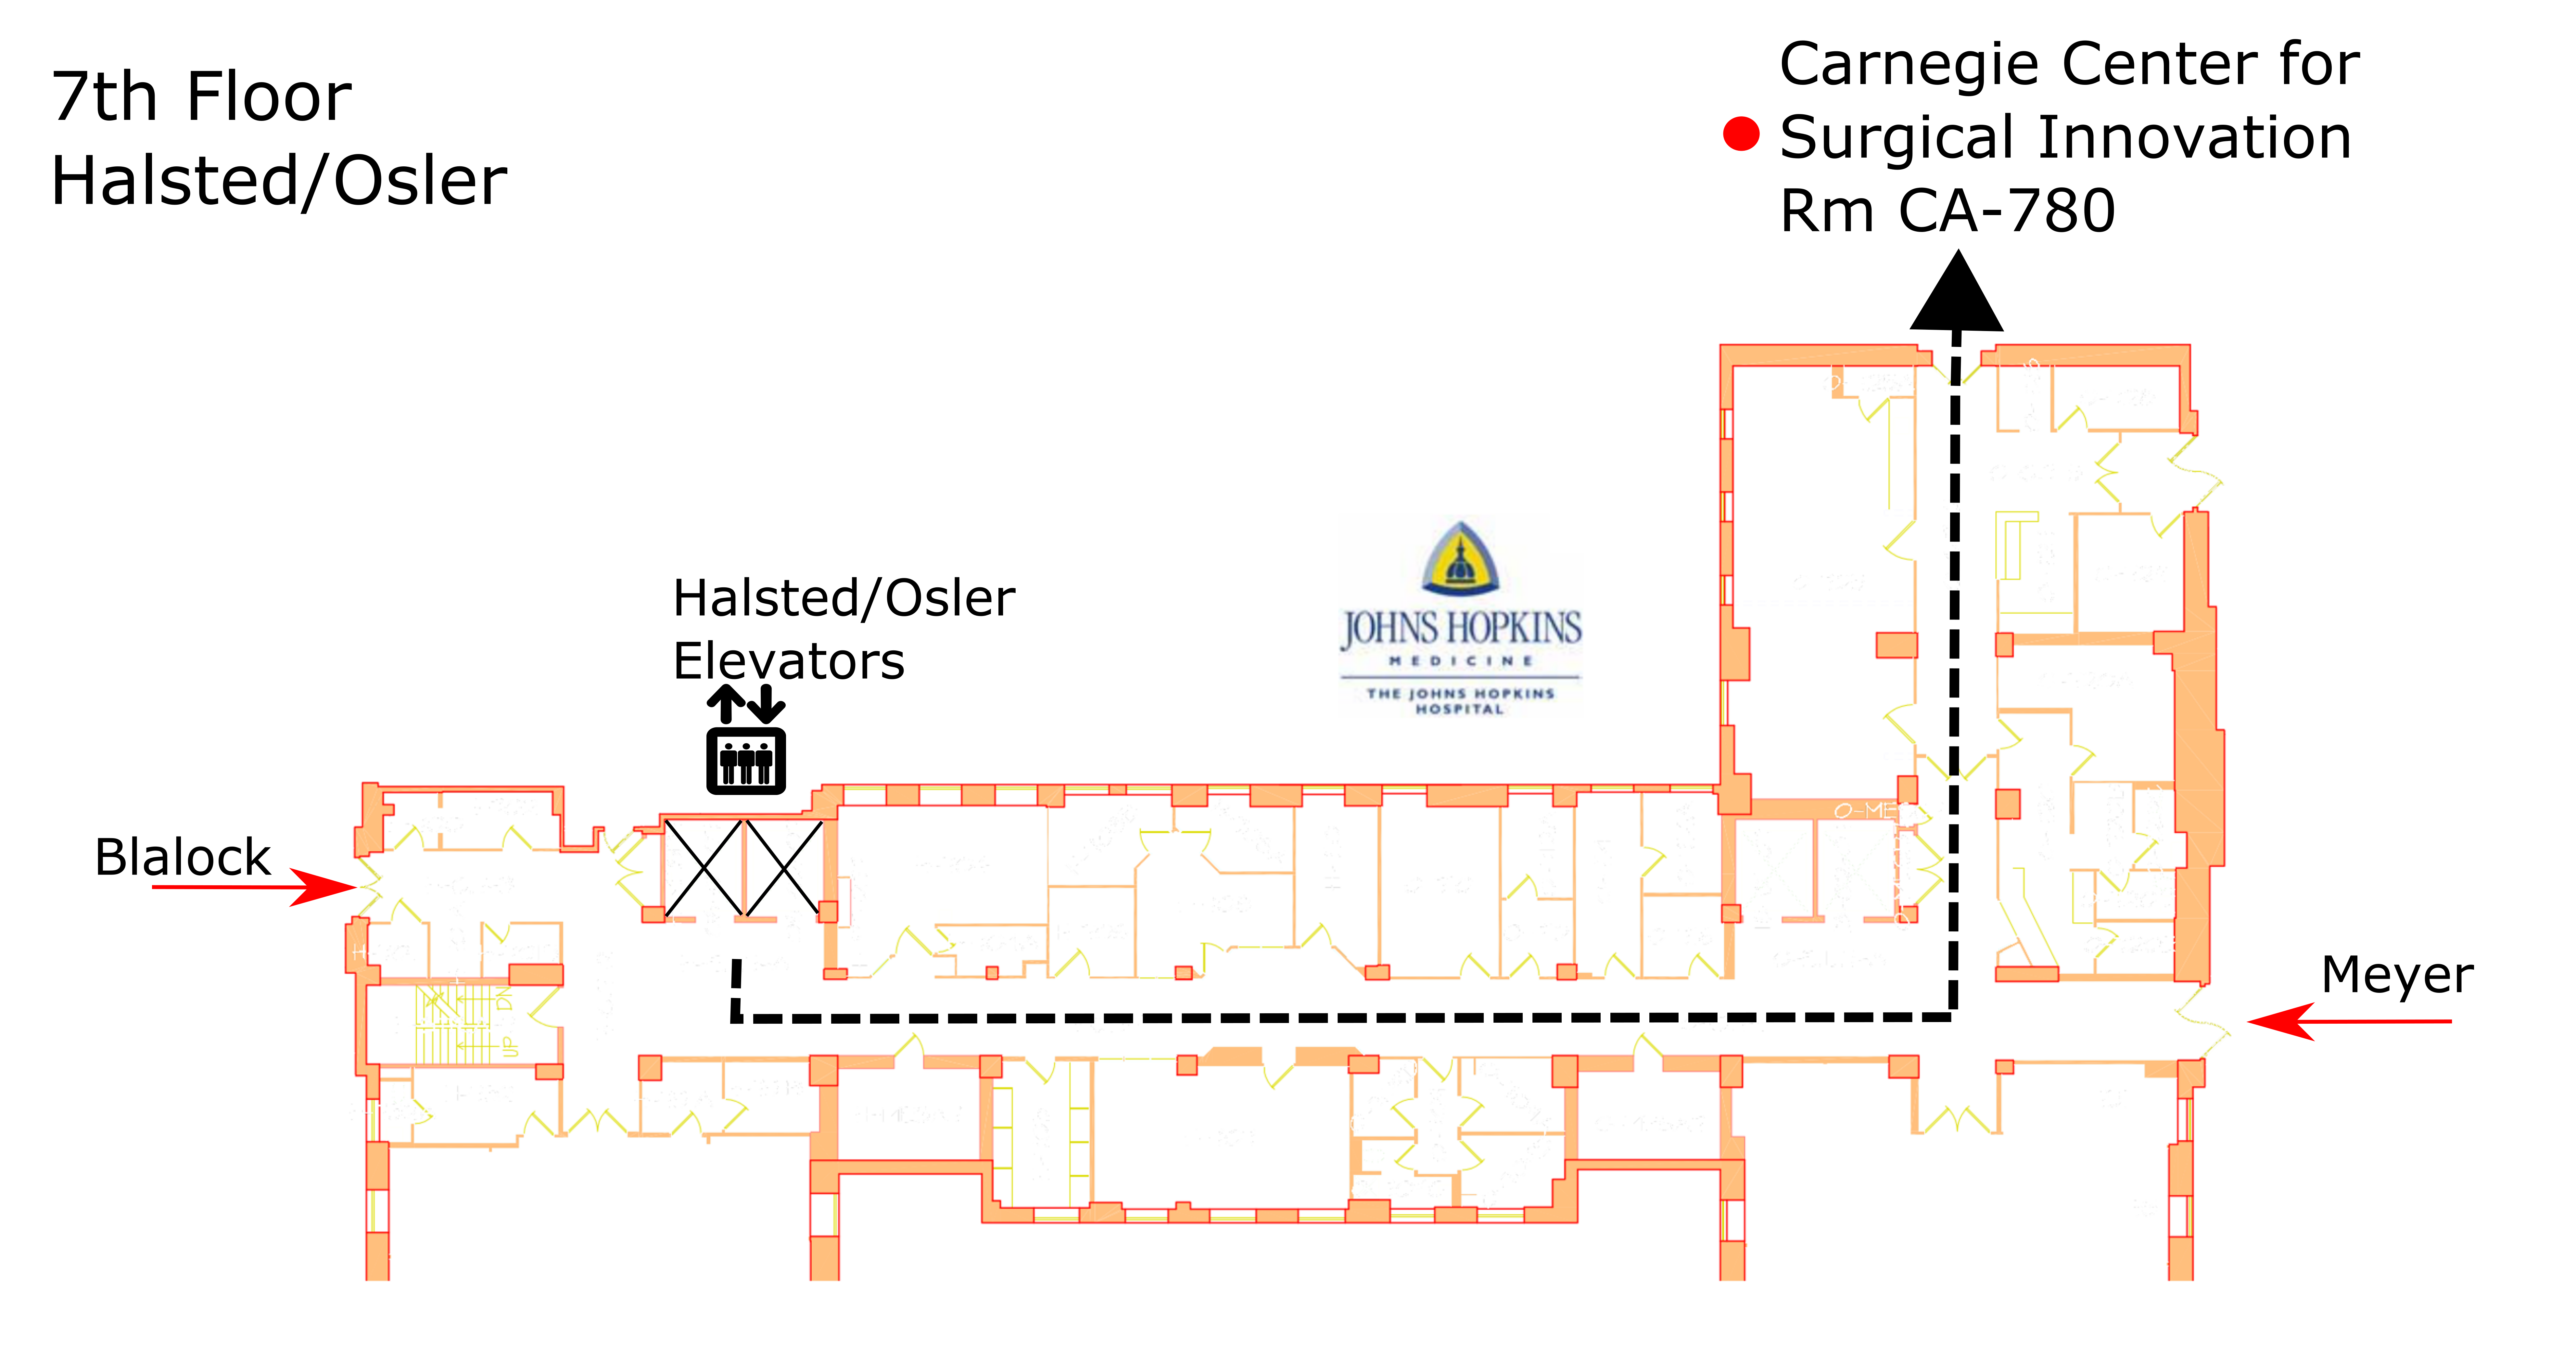 Contact – Carnegie Center